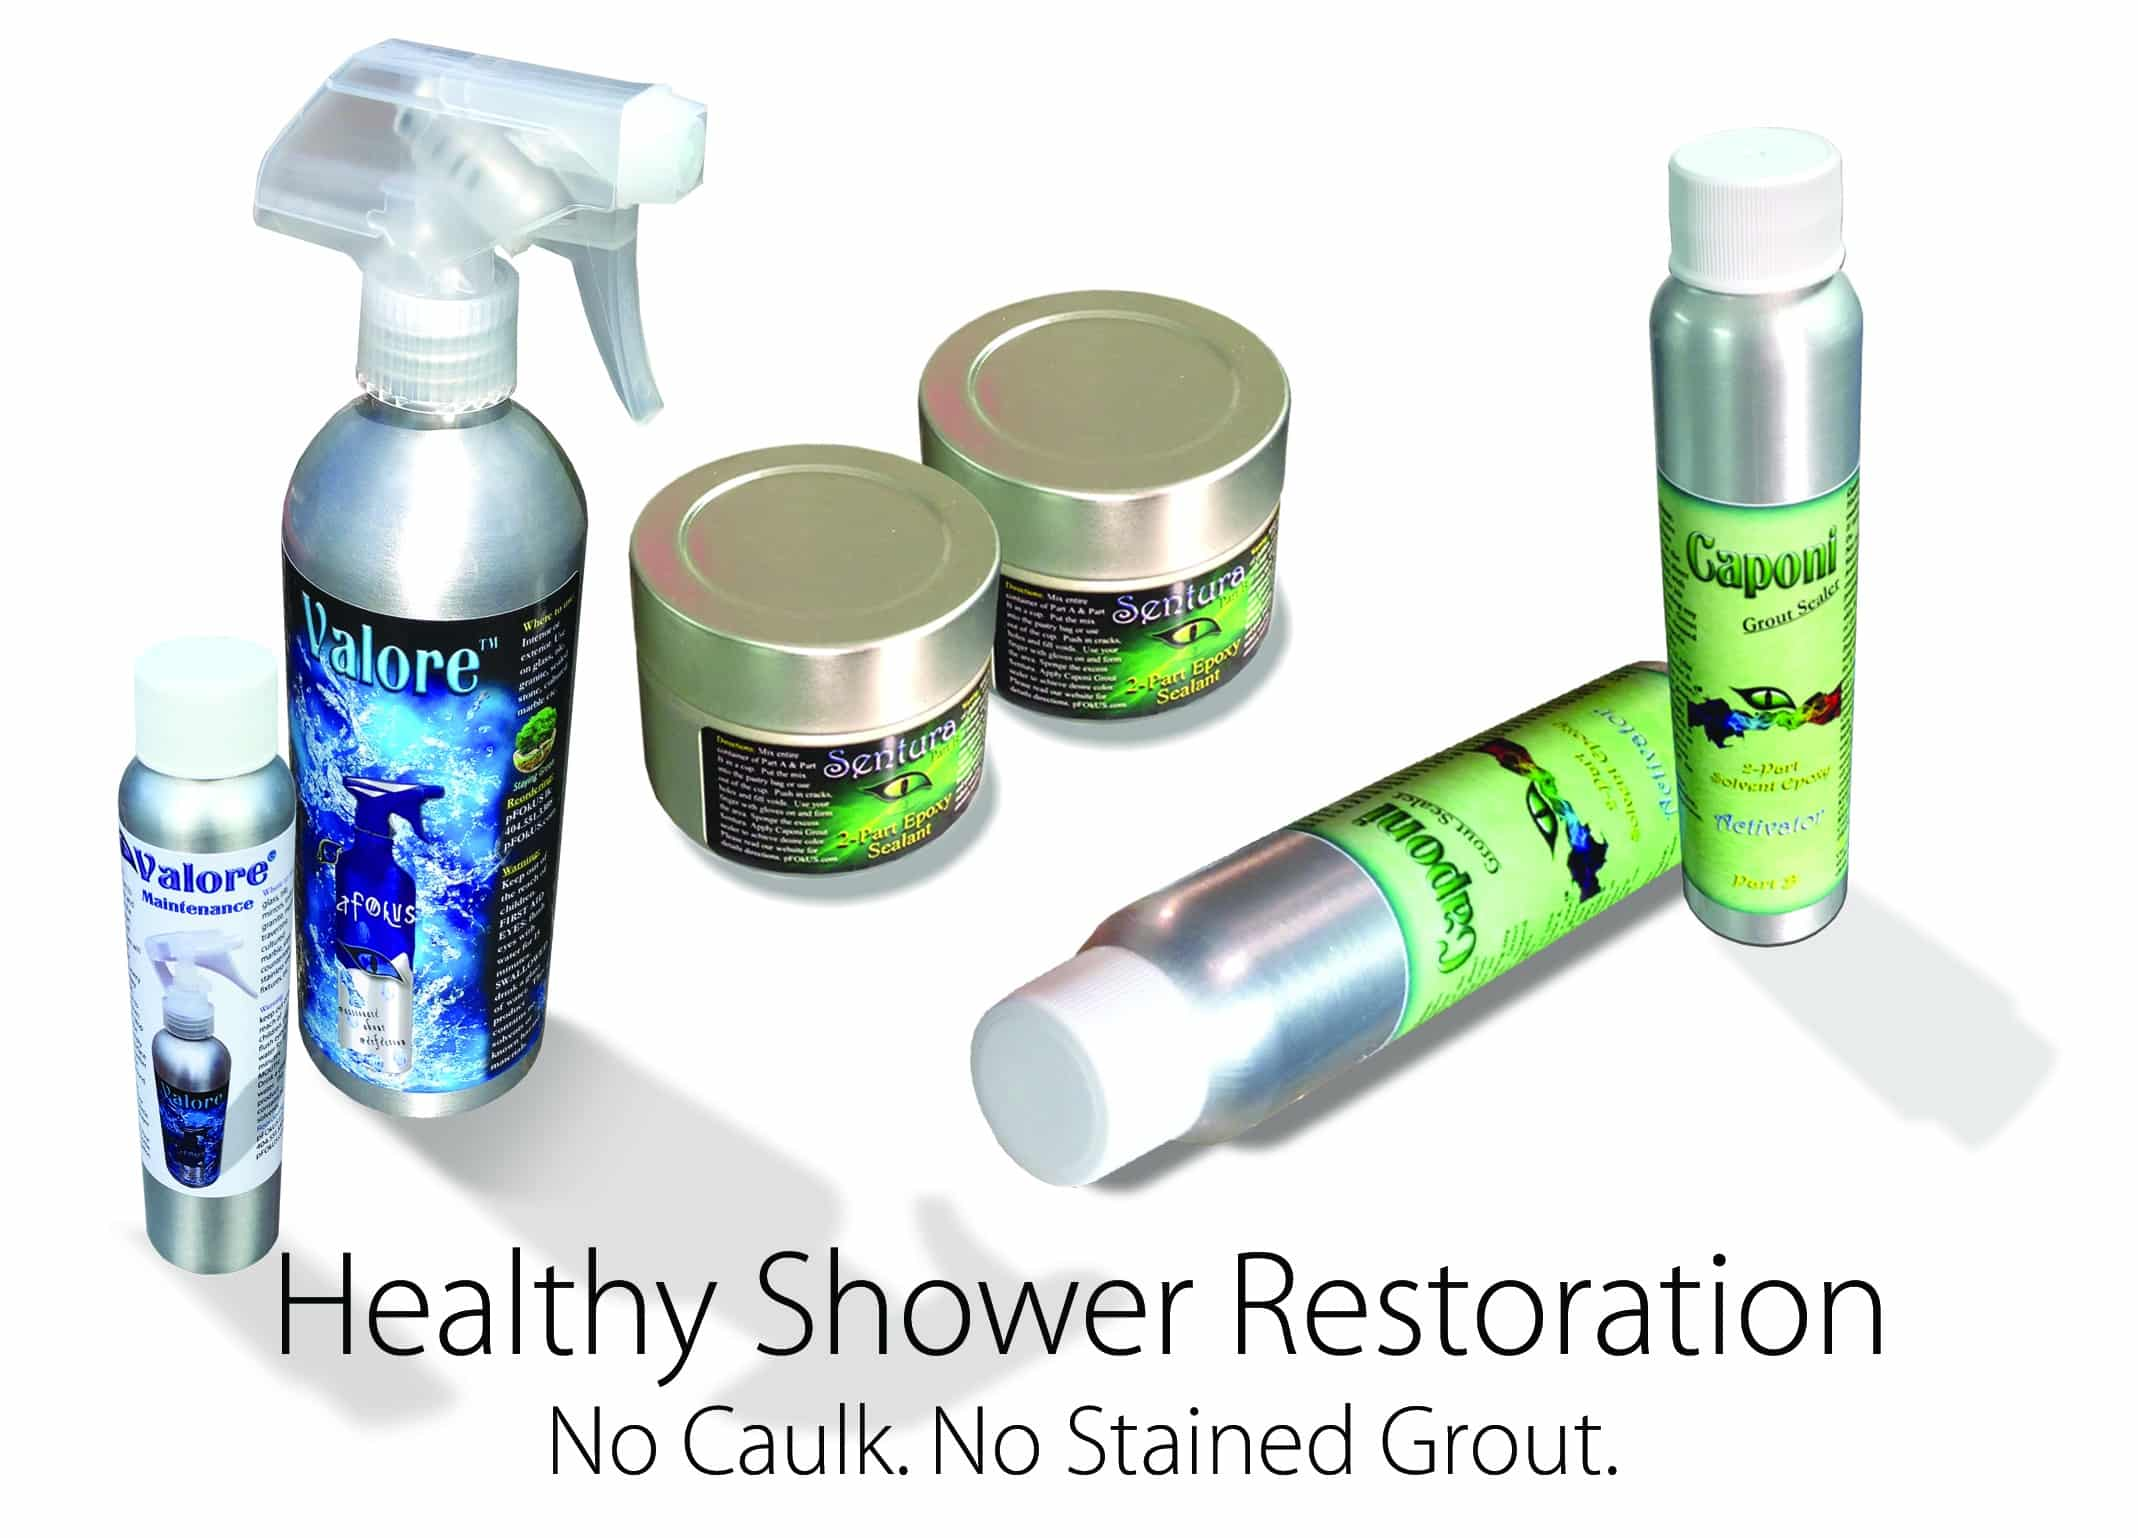 Shower Restoration Products